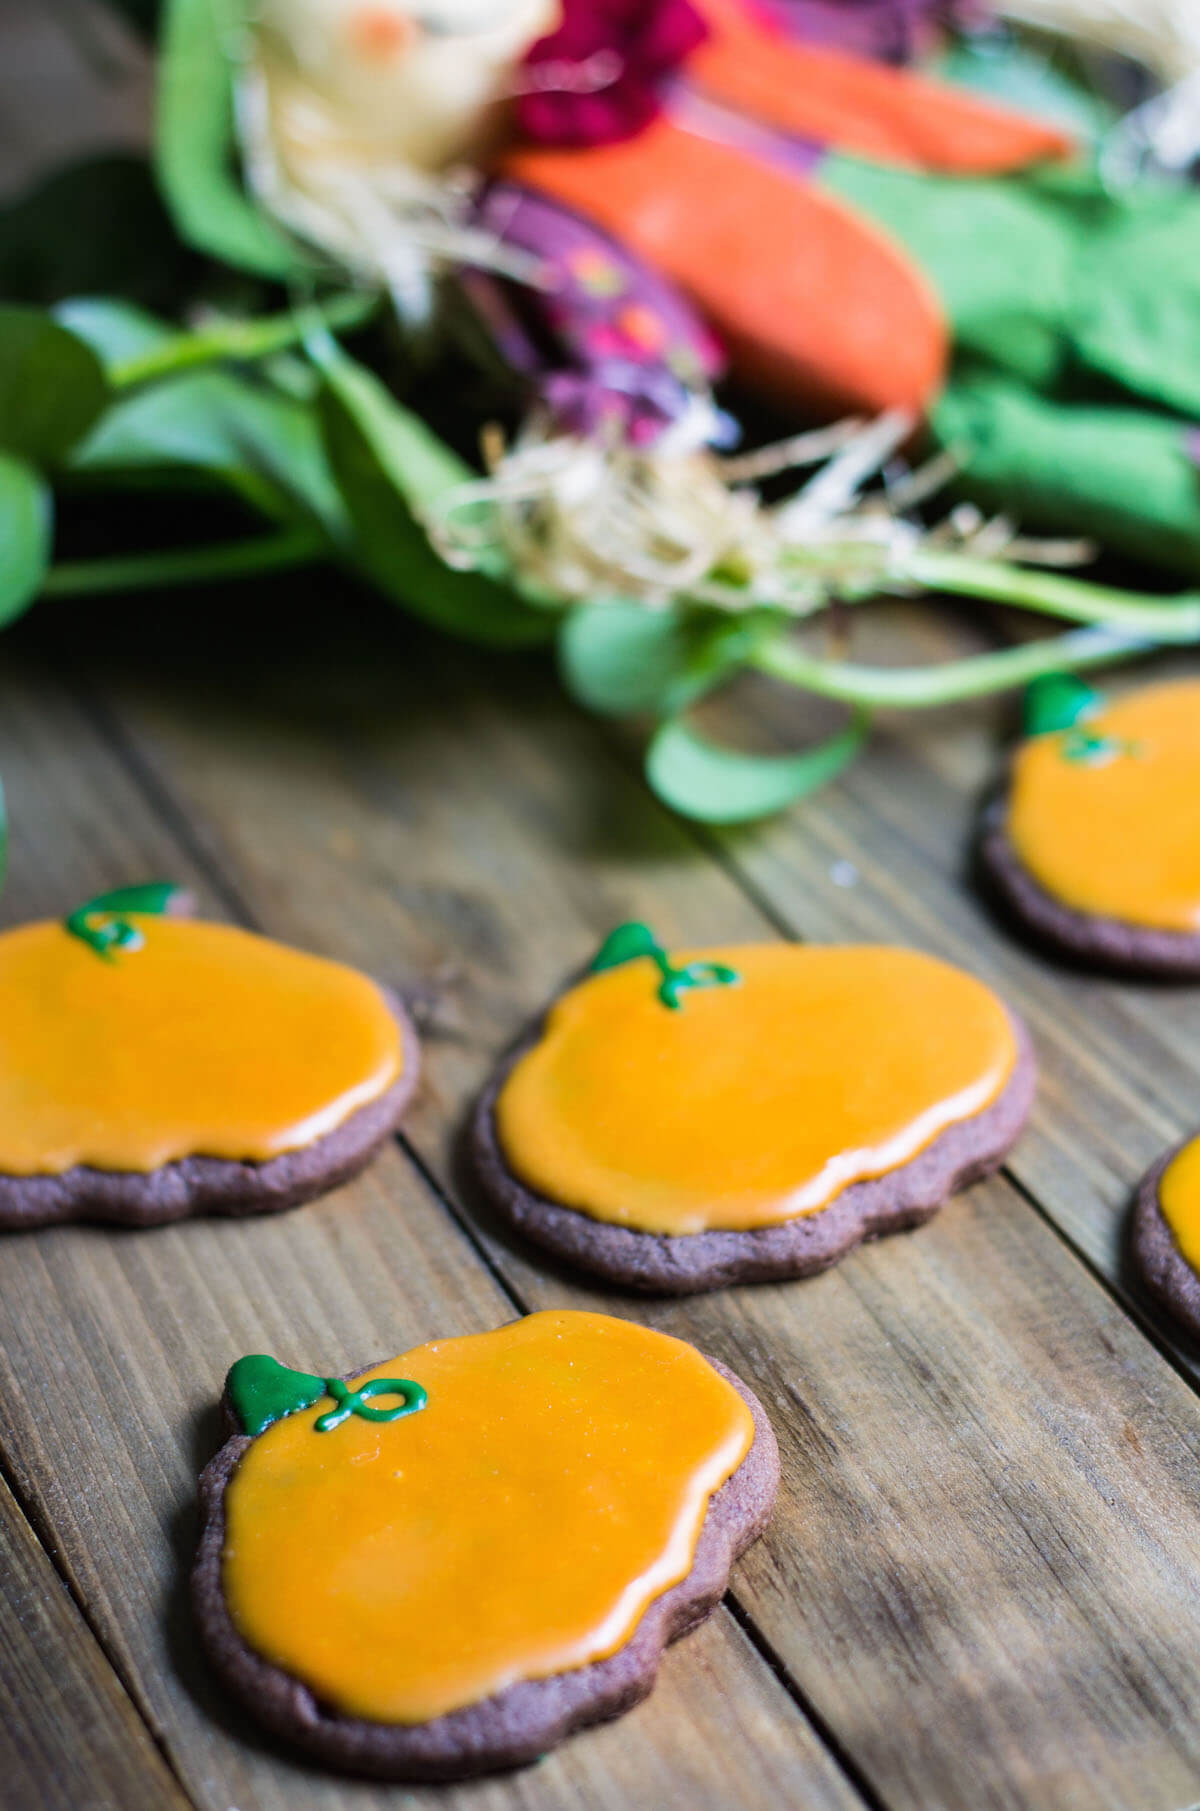 Halloween Cookies decorated as pumpkins with royal icing